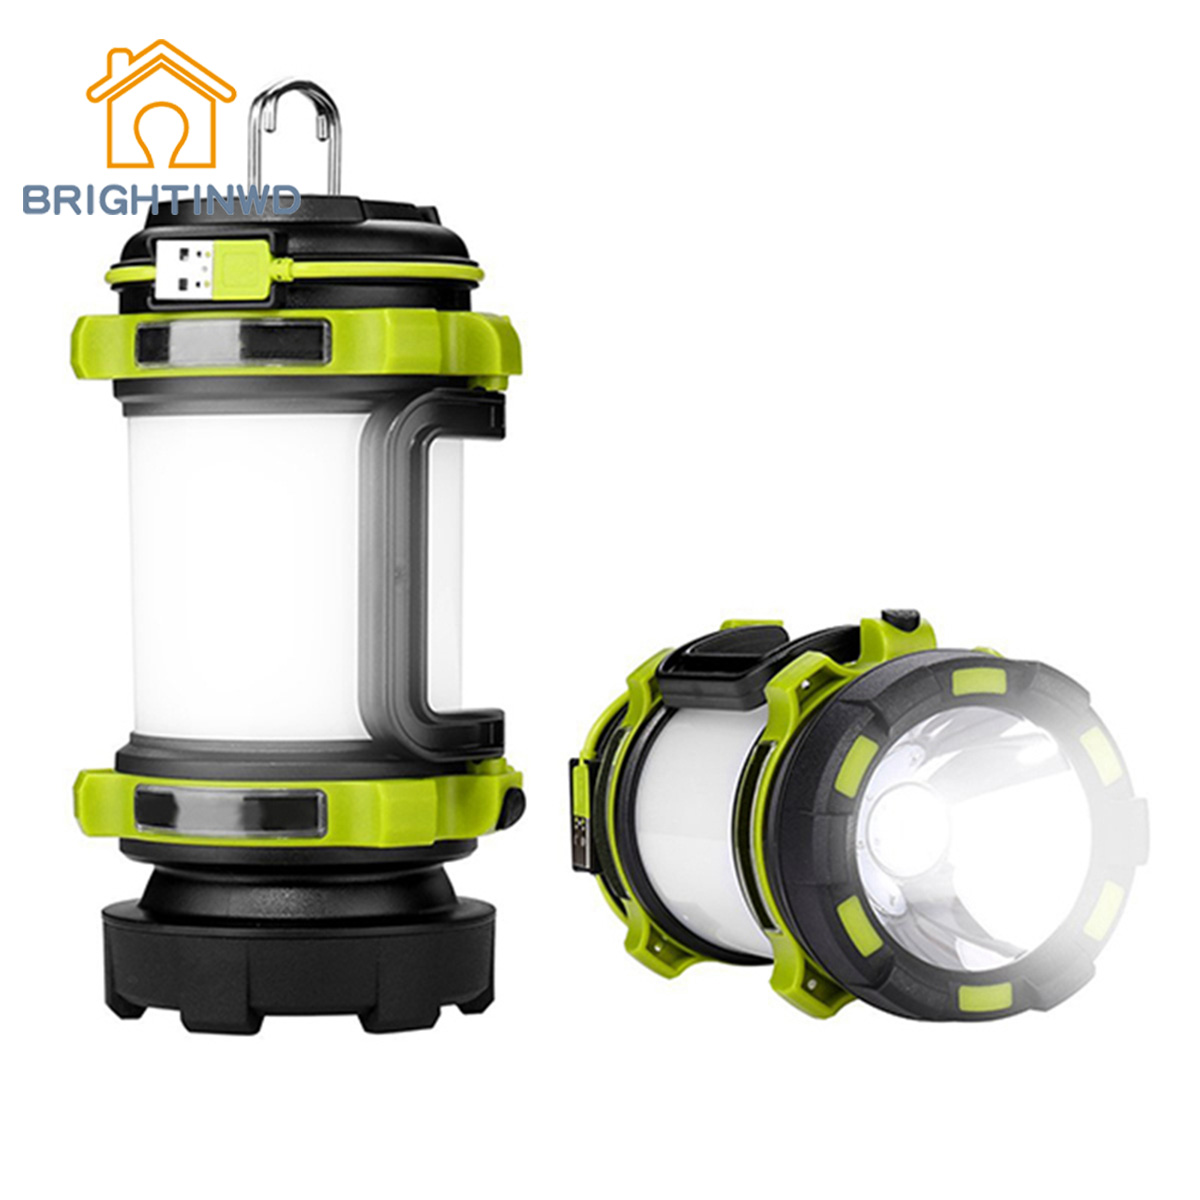 BRIGHTINWD LED Camping Lantern Spotlight Flashlight Waterproof Rechargeable 2600mAh Power Bank DC5V Hiking Emergency Tent настольная лампа marksloid 105772